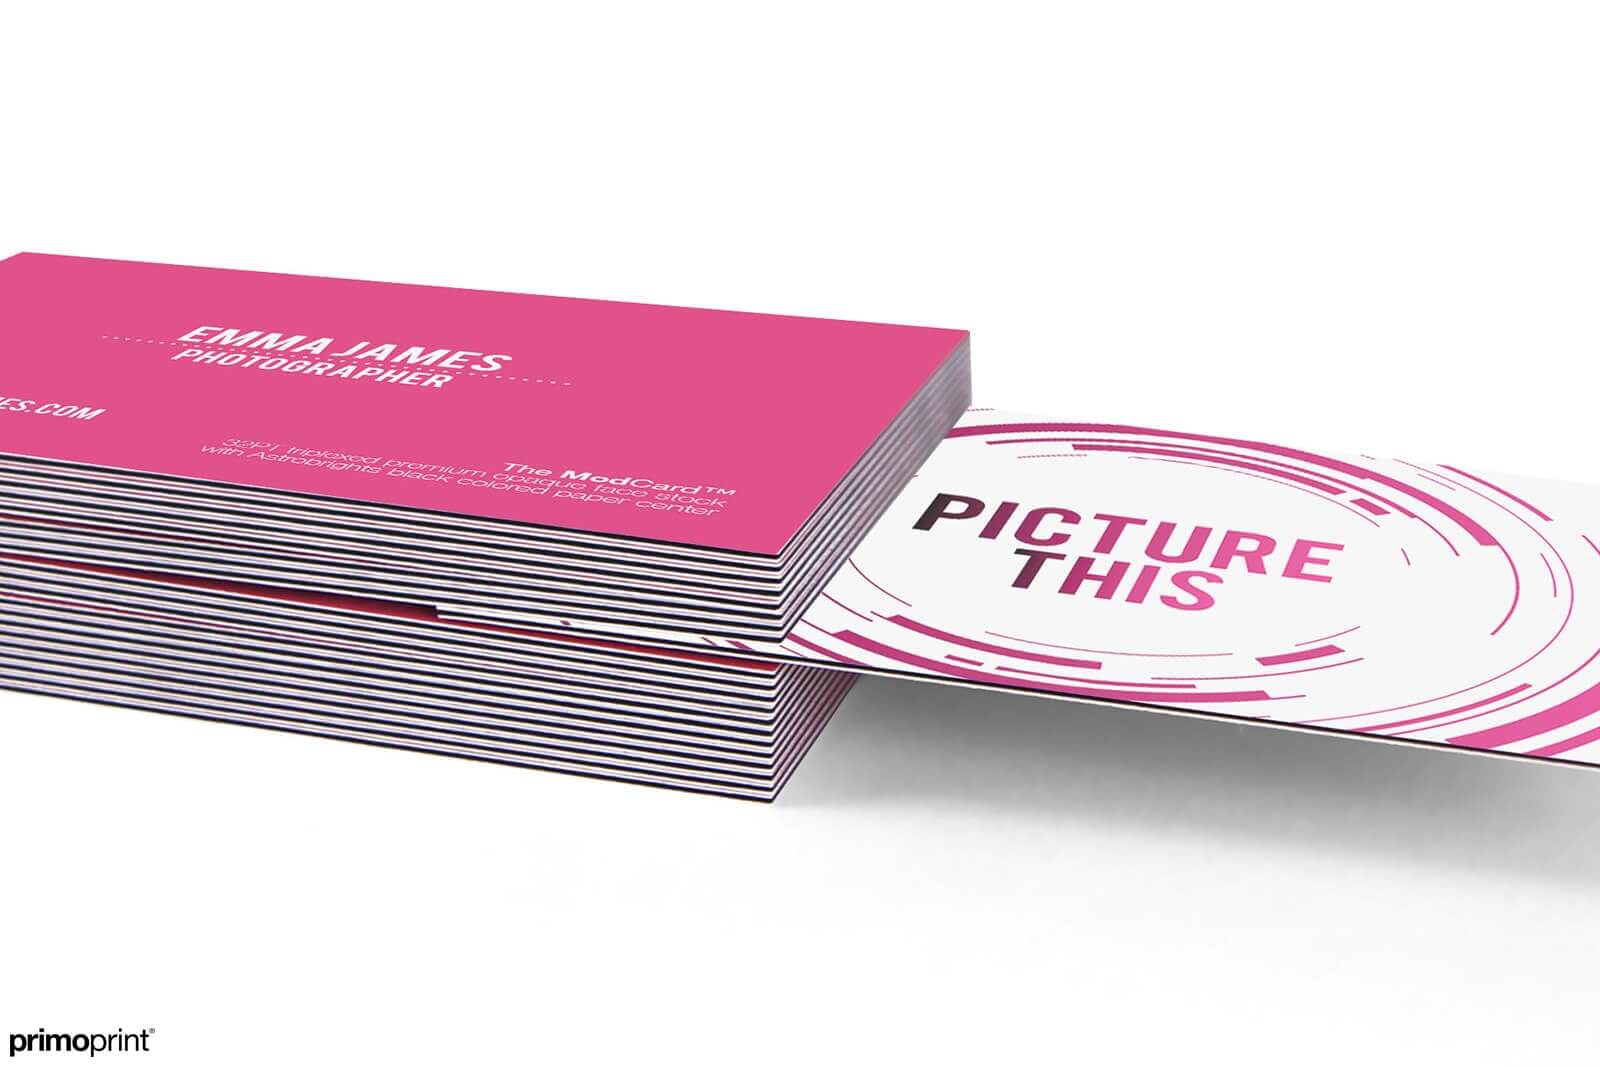 32PT Thick Business Card designed by Primoprint.